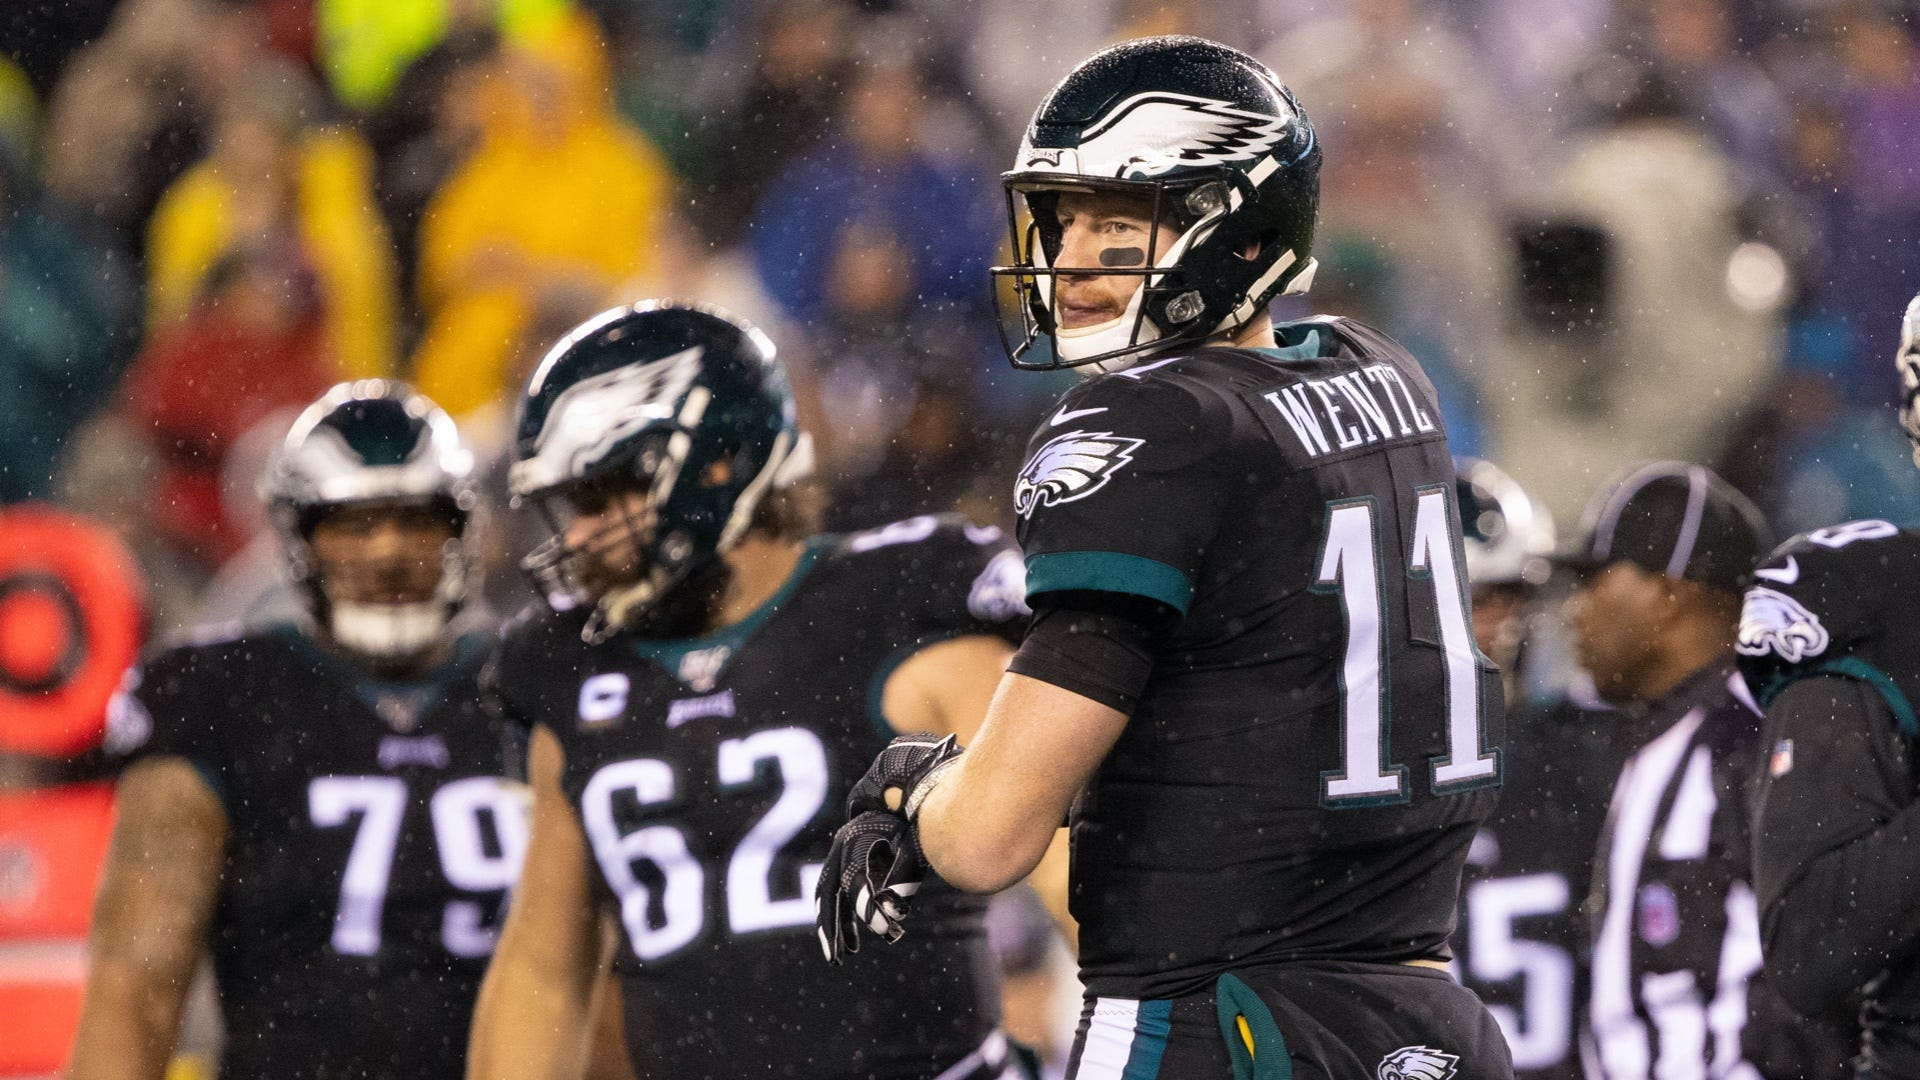 Carson Wentz looks ready to take Eagles on playoff run | 94 WIP